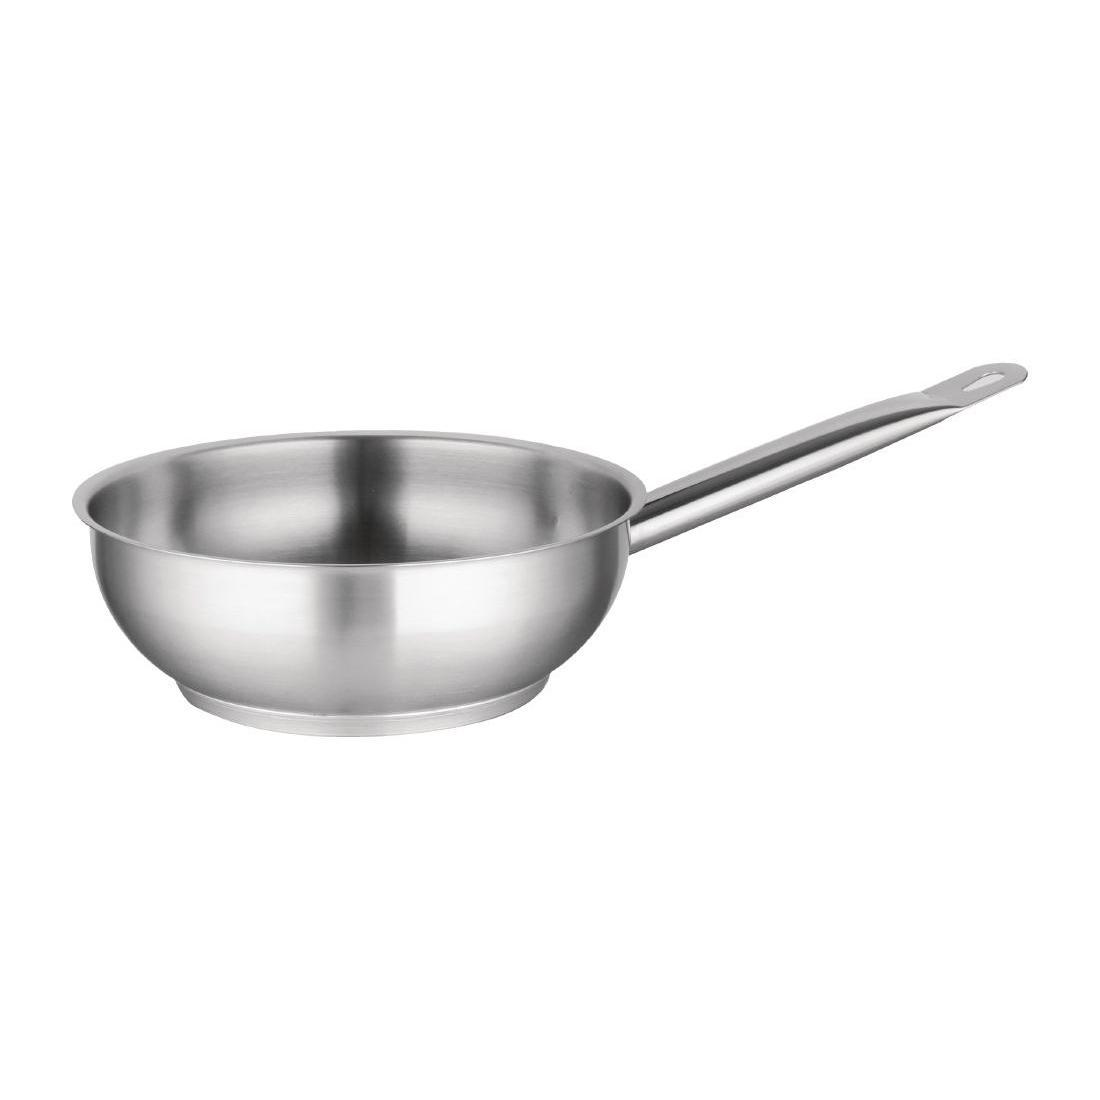 Vogue Stainless Steel Saute Pan 240mm - M923